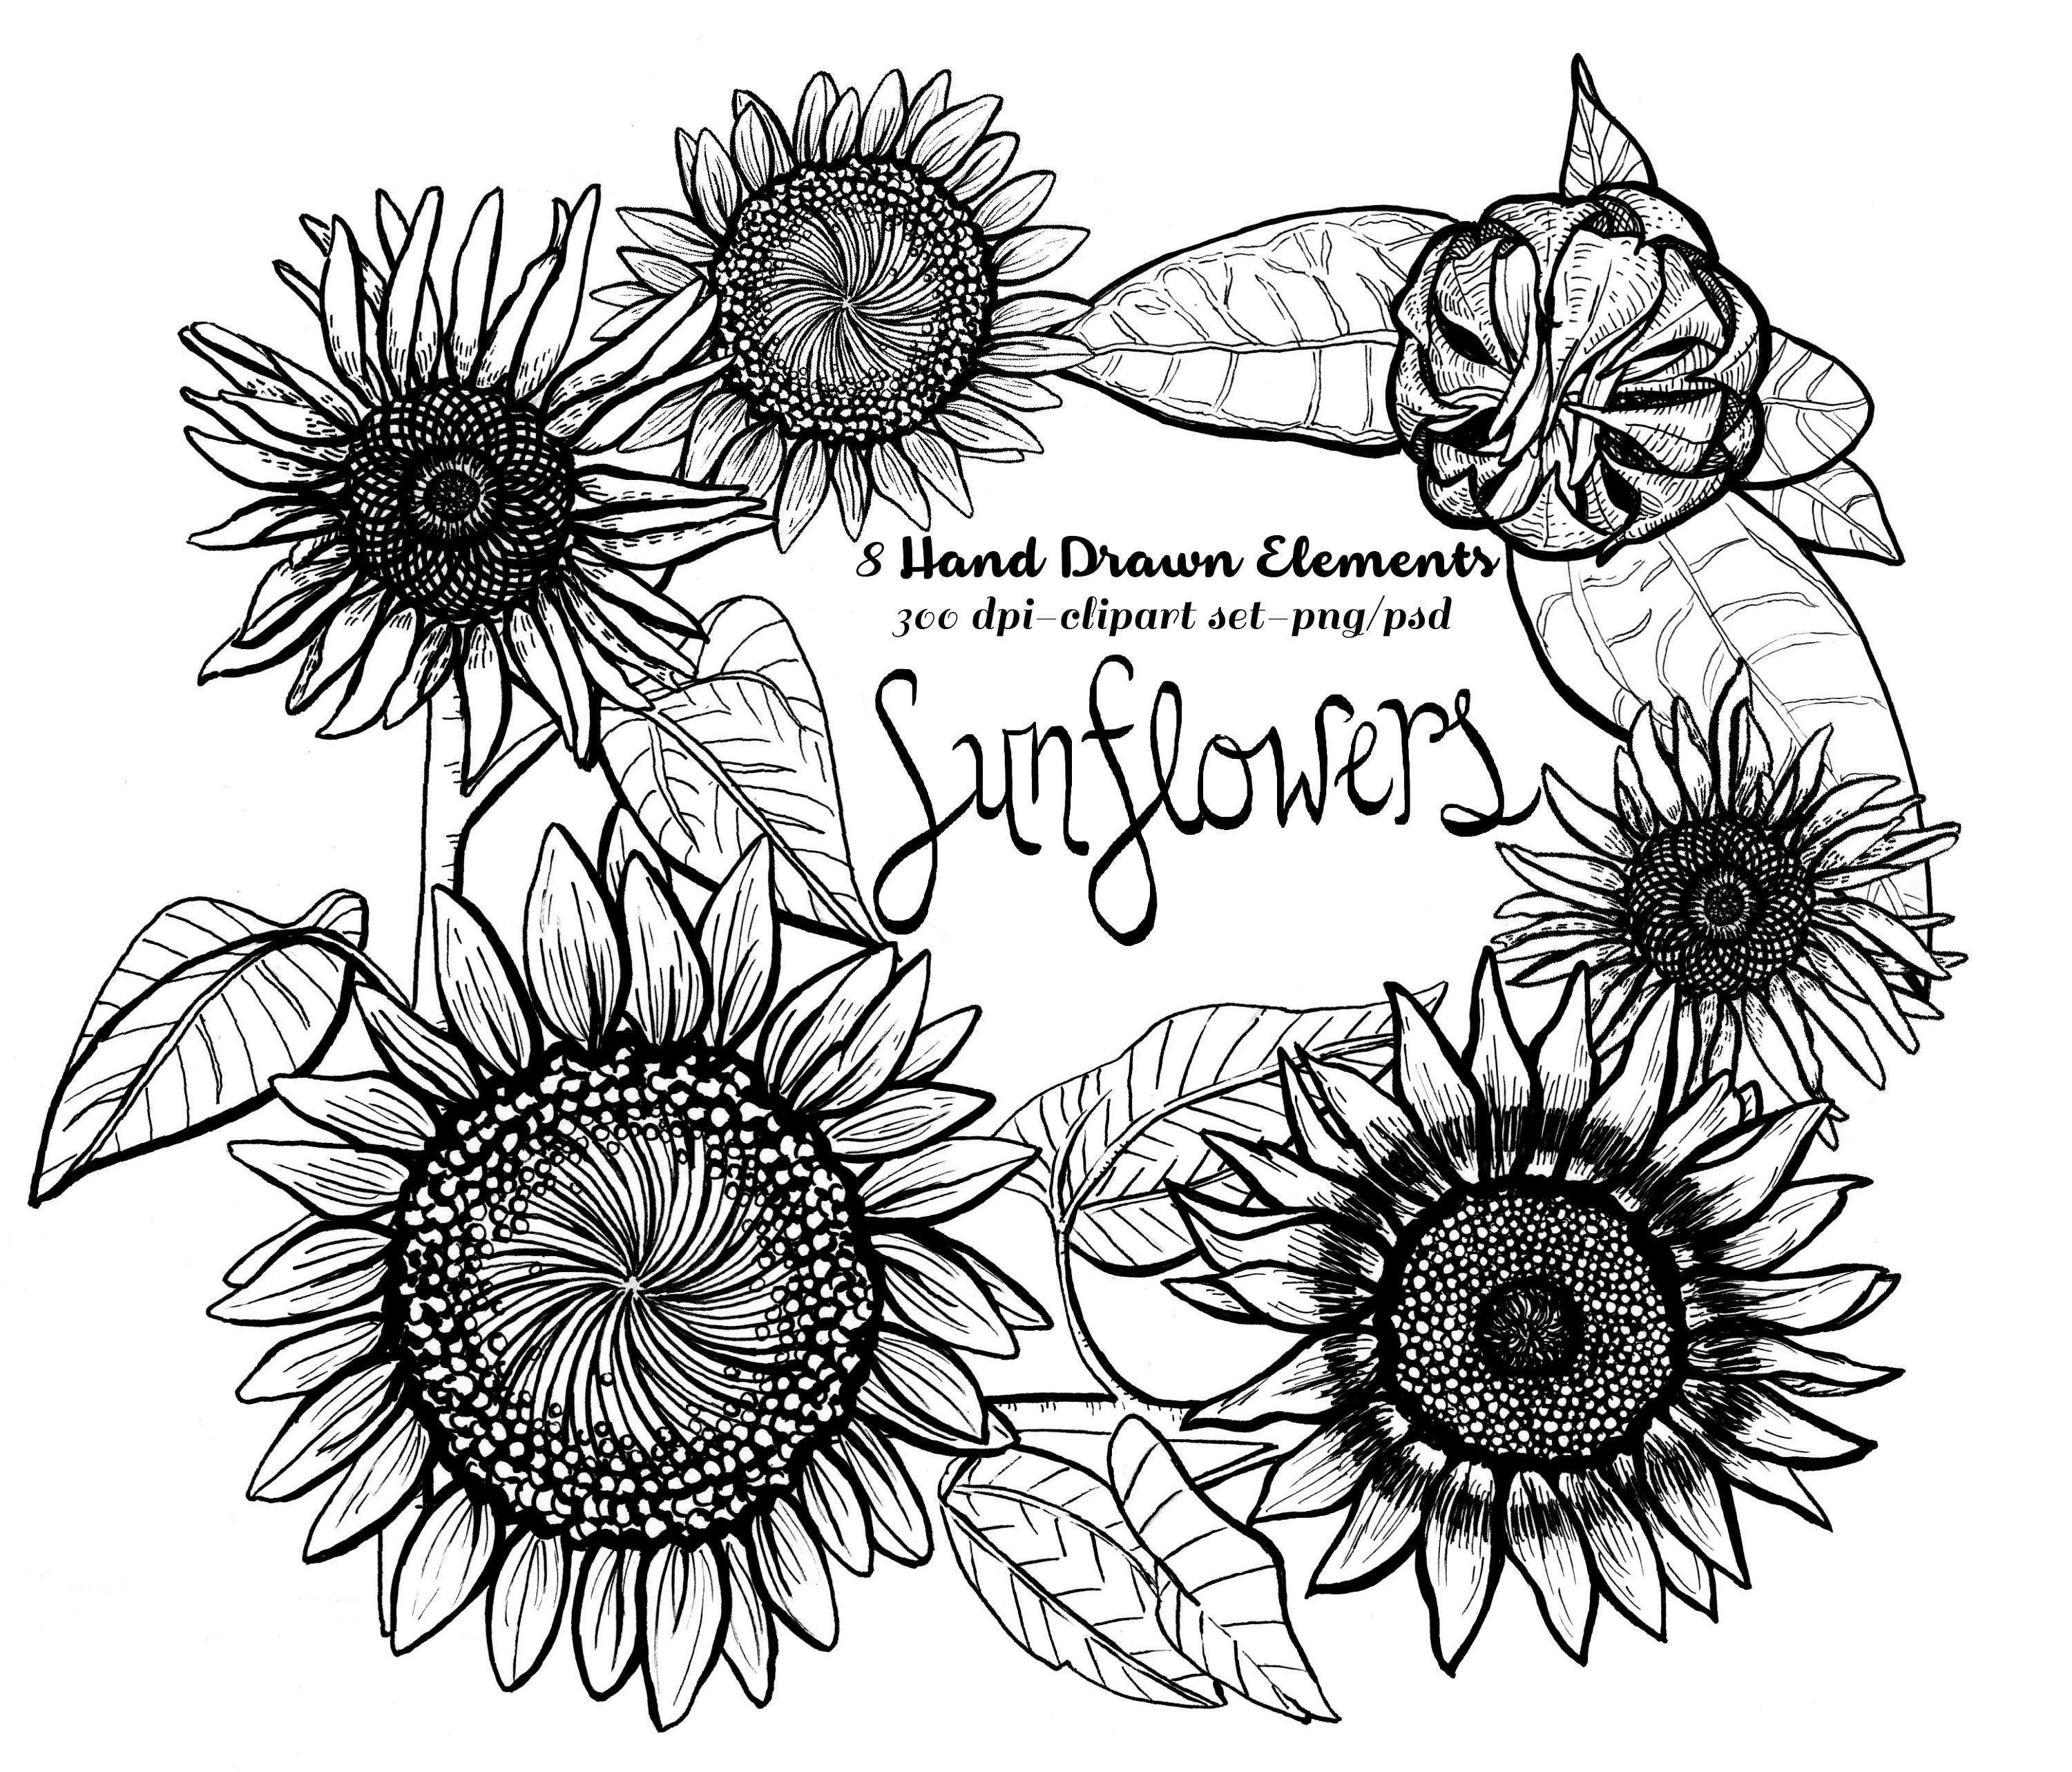 sun flower drawing sunflower outline drawing at paintingvalleycom explore flower drawing sun